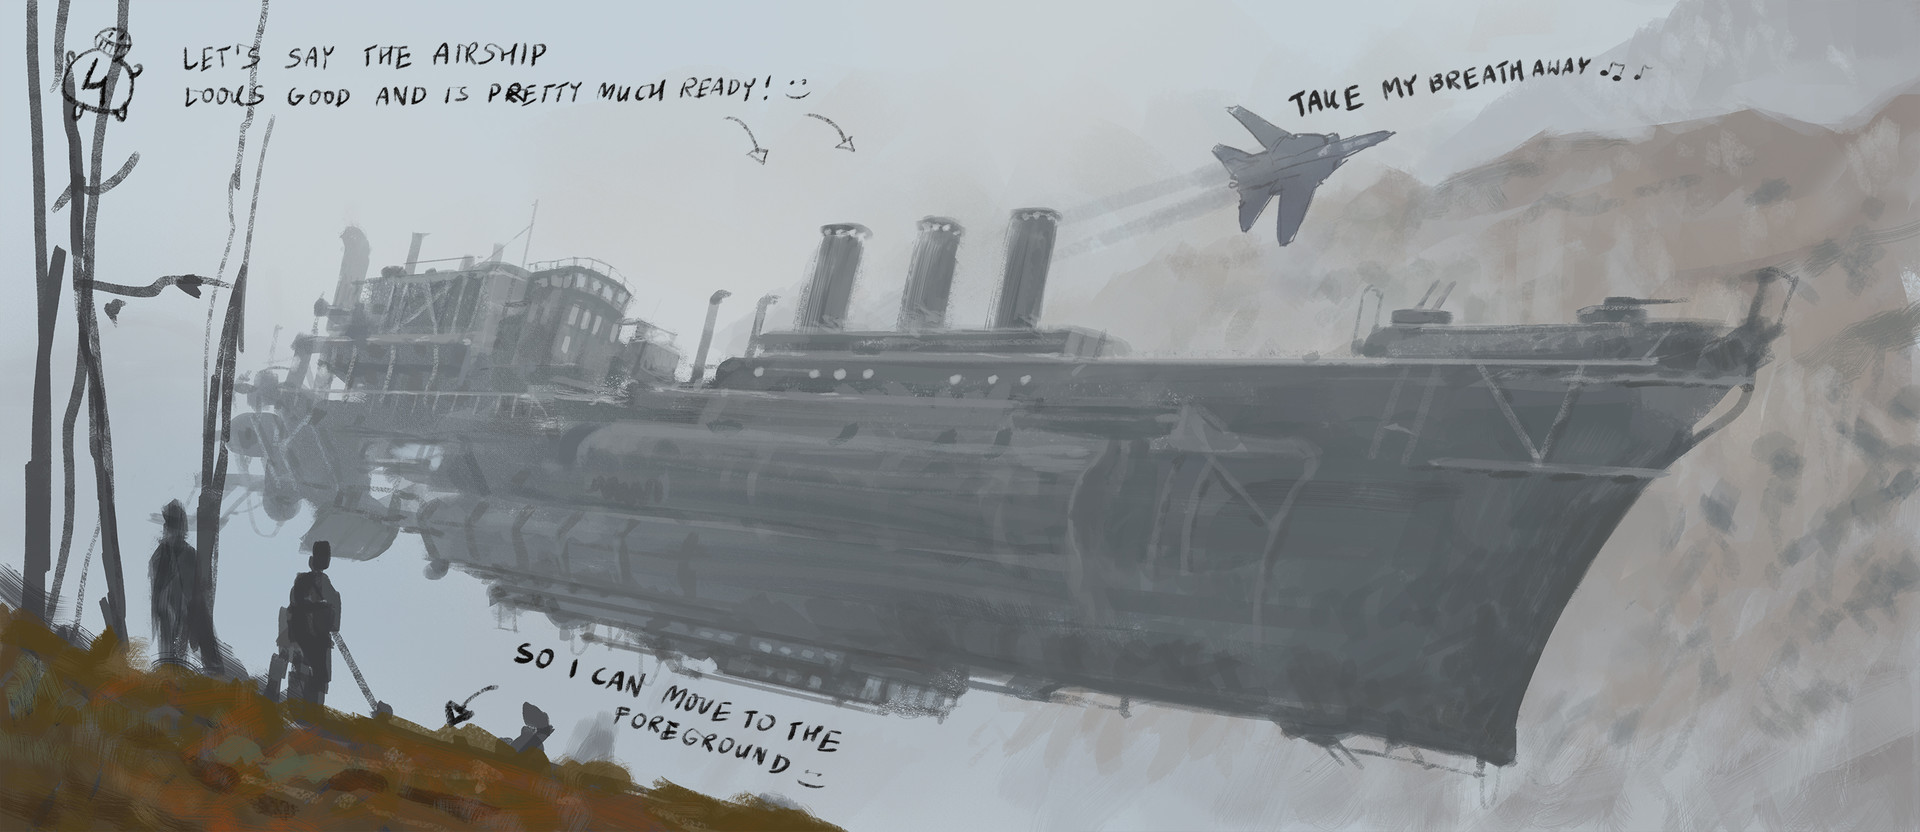 Jakub rozalski airship expansion cover art process3